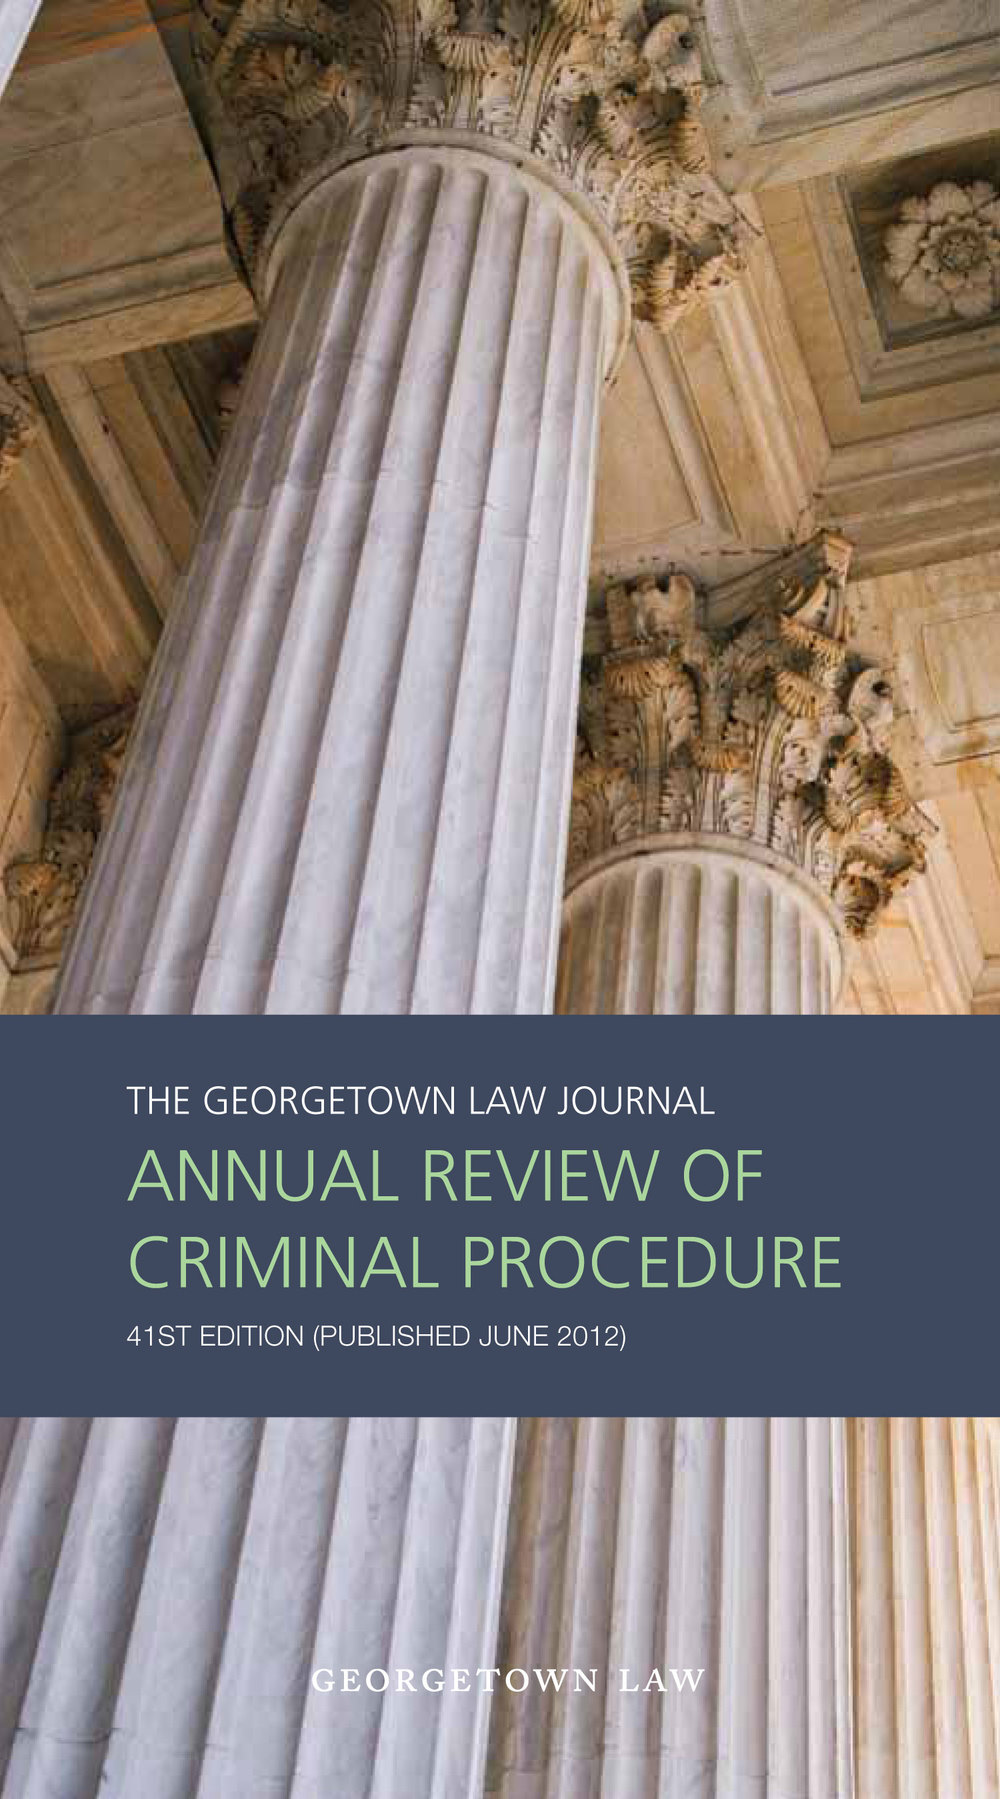 Georgetown-law-journal-annual-review-of-criminal-procedure-41st-edition-2012-1.jpg